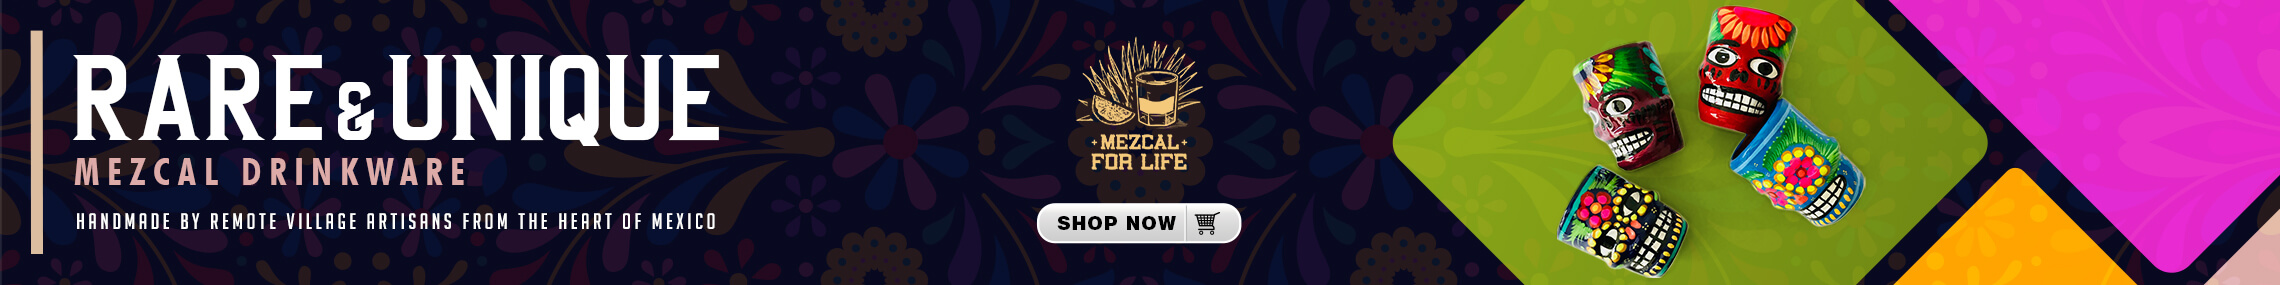 Mezcal For Life advertisement